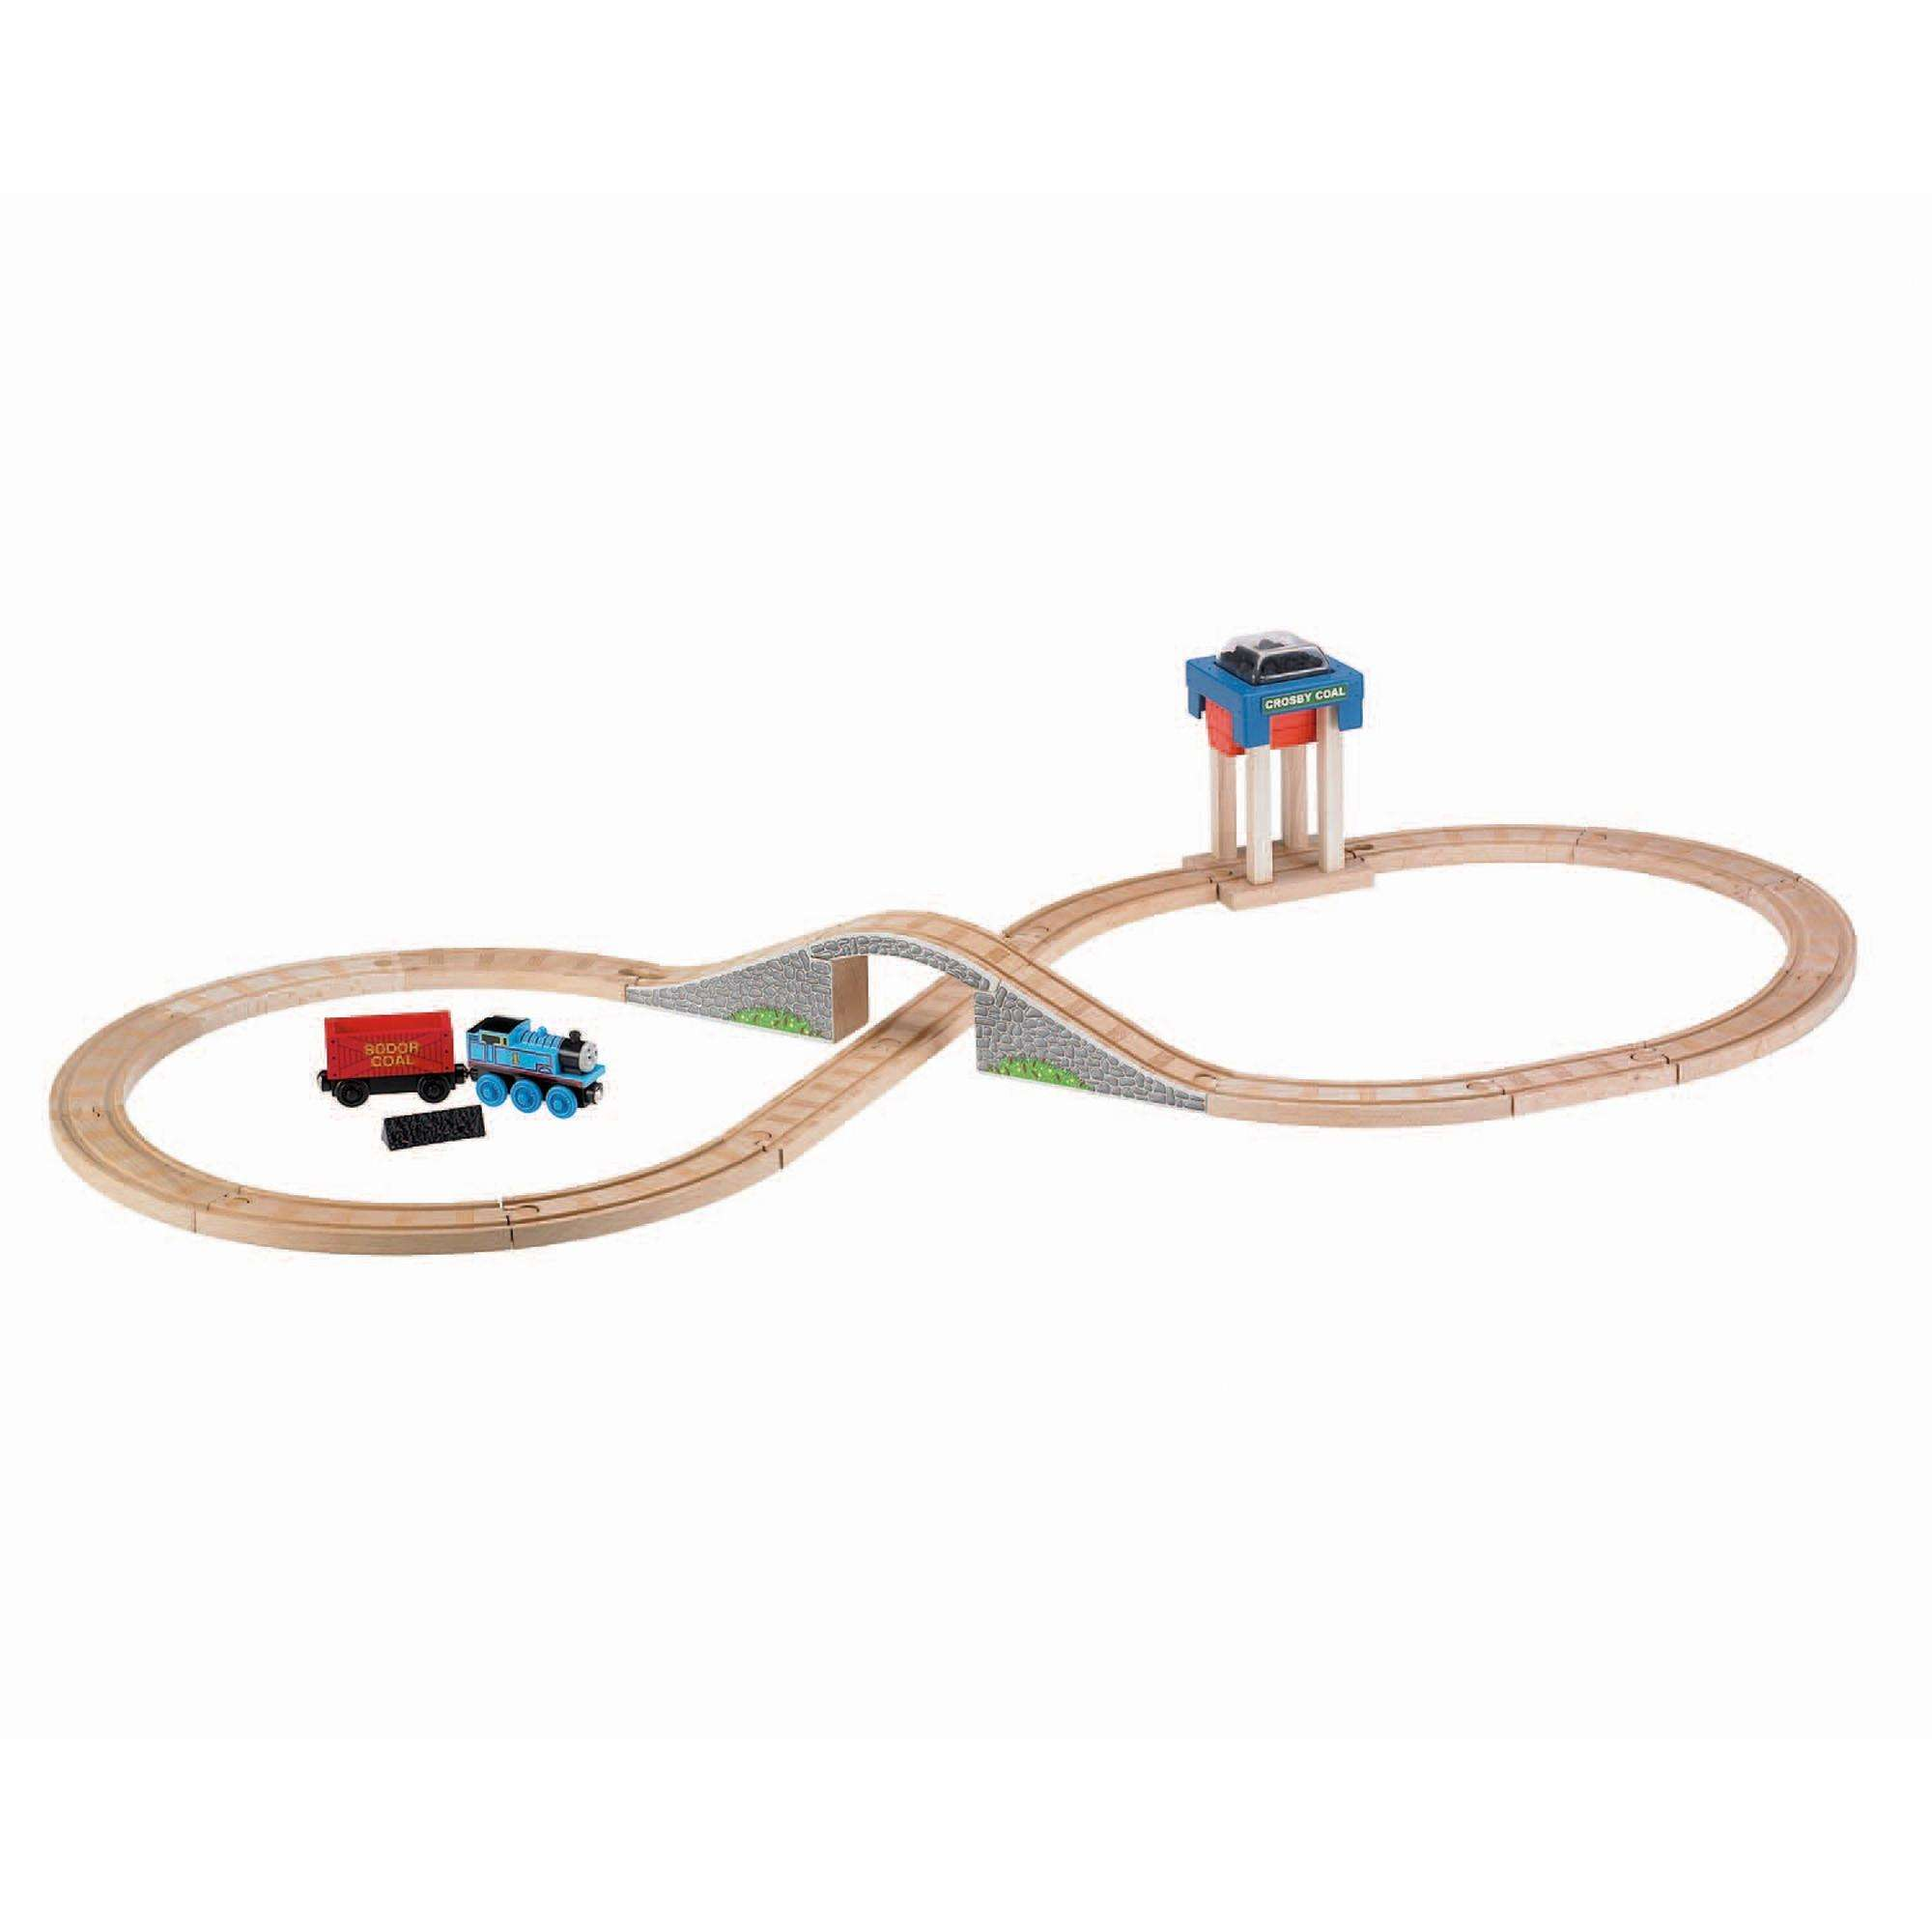 Thomas & Friends Wooden Railway Coal Hopper Figure 8 Set by FISHER PRICE